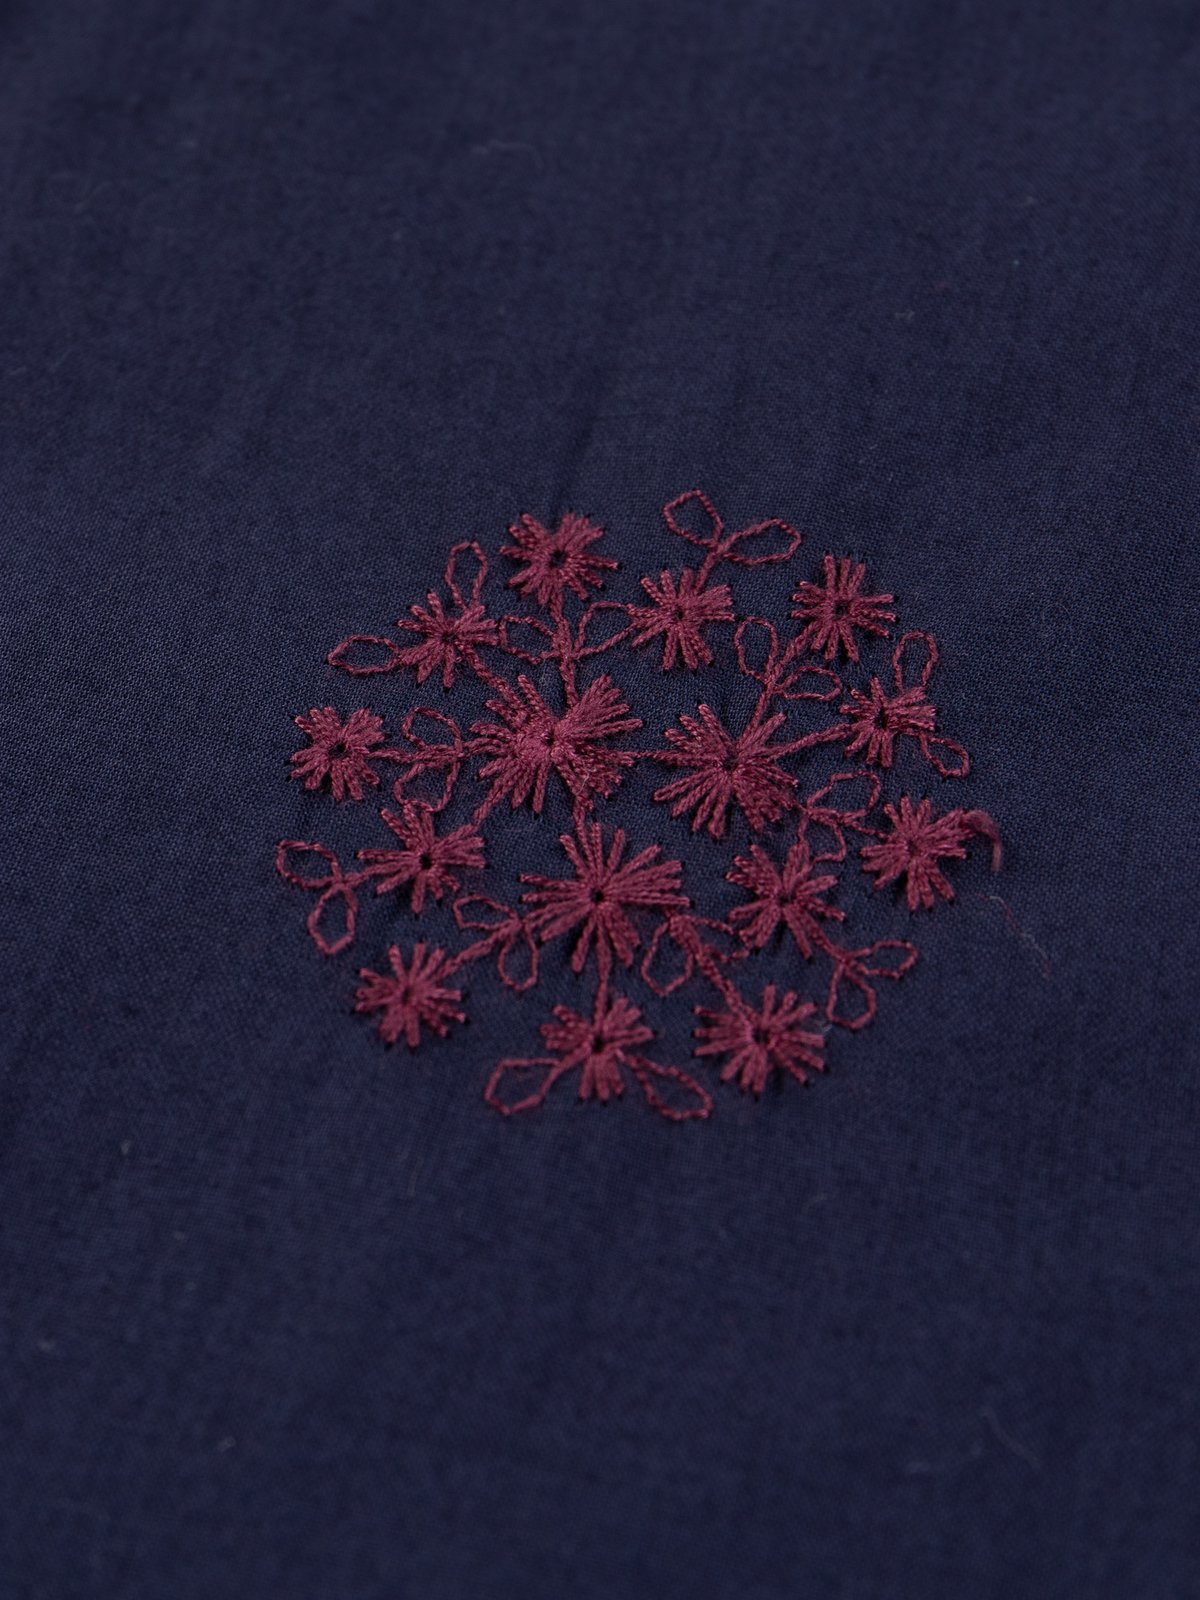 Navy Floral Dot Embroidered Cabana Shirt - Image 5